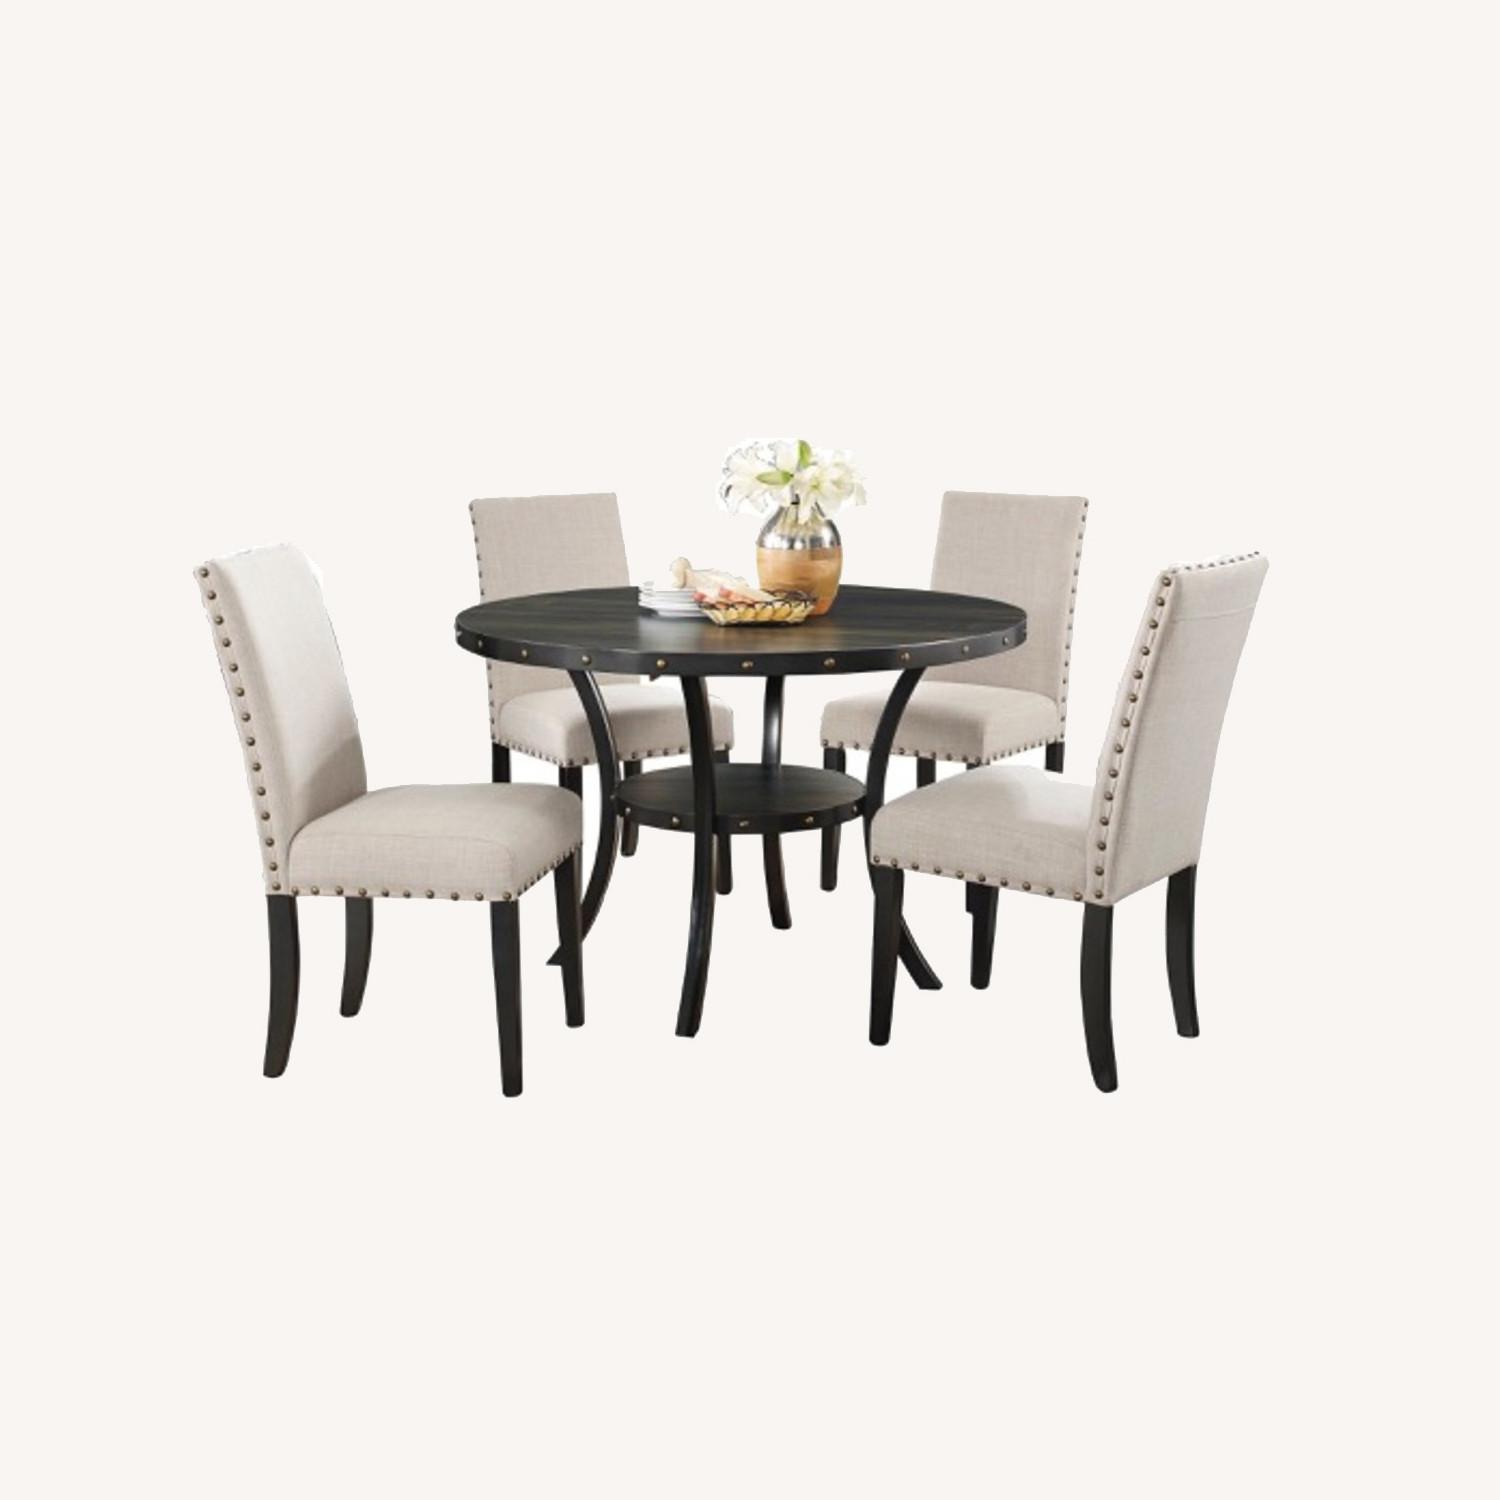 Wayfair Set of Gracie Oaks Upholstered Dining Chairs - image-0